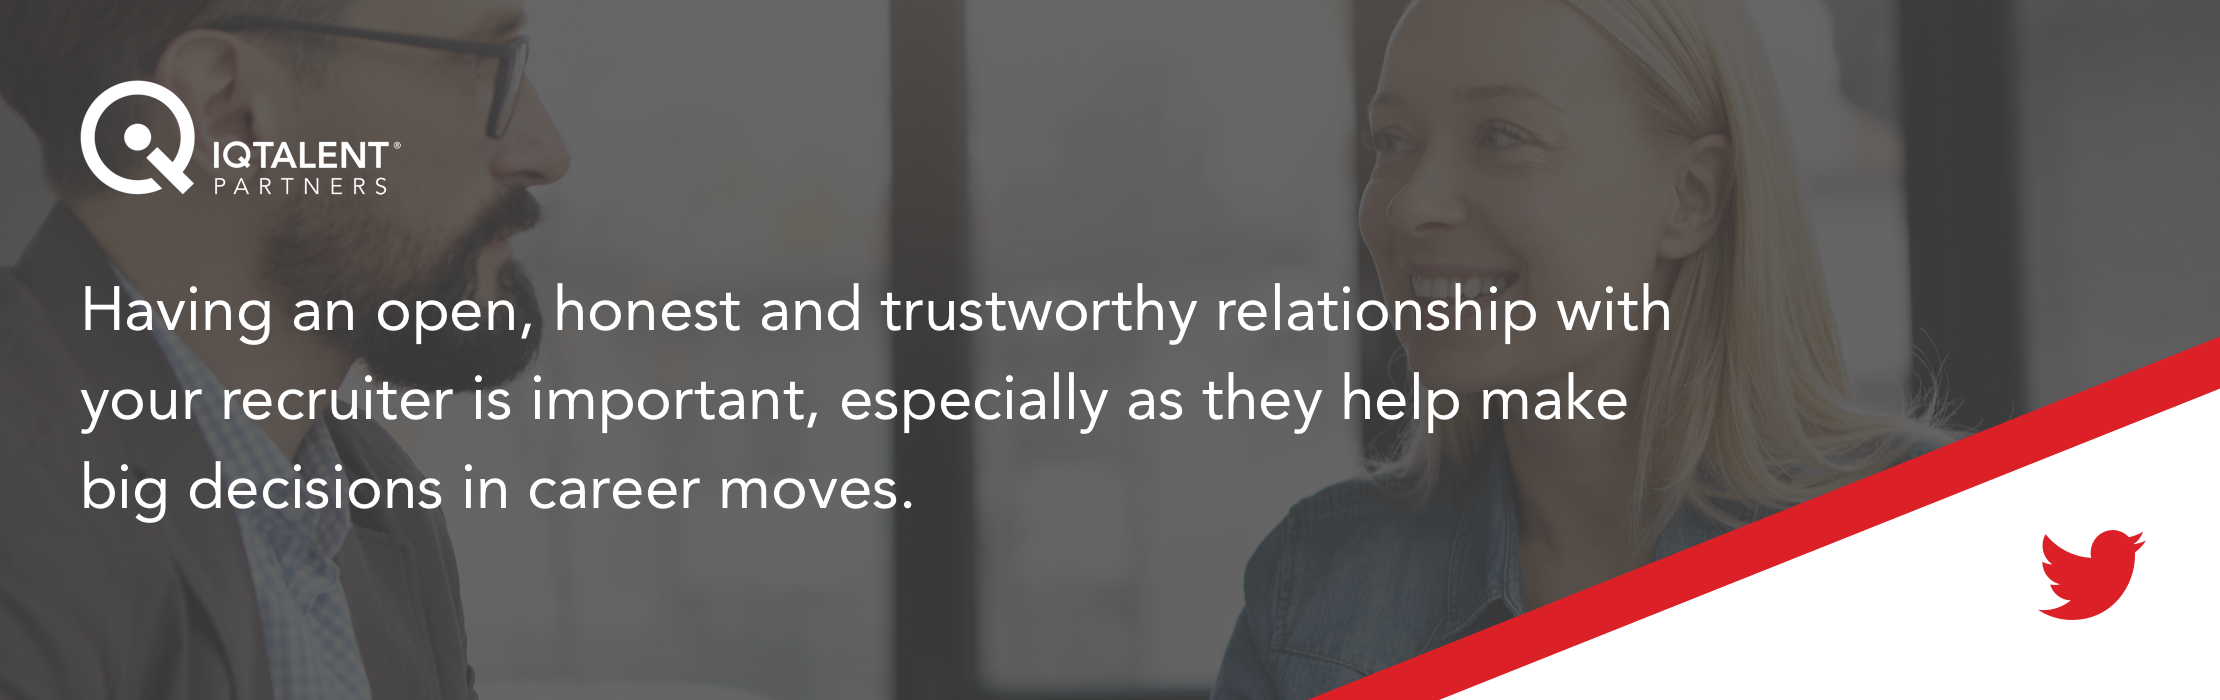 Having an open, honest and trustworthy relationship with your recruiter is important, especially as they help make big decisions in career moves.